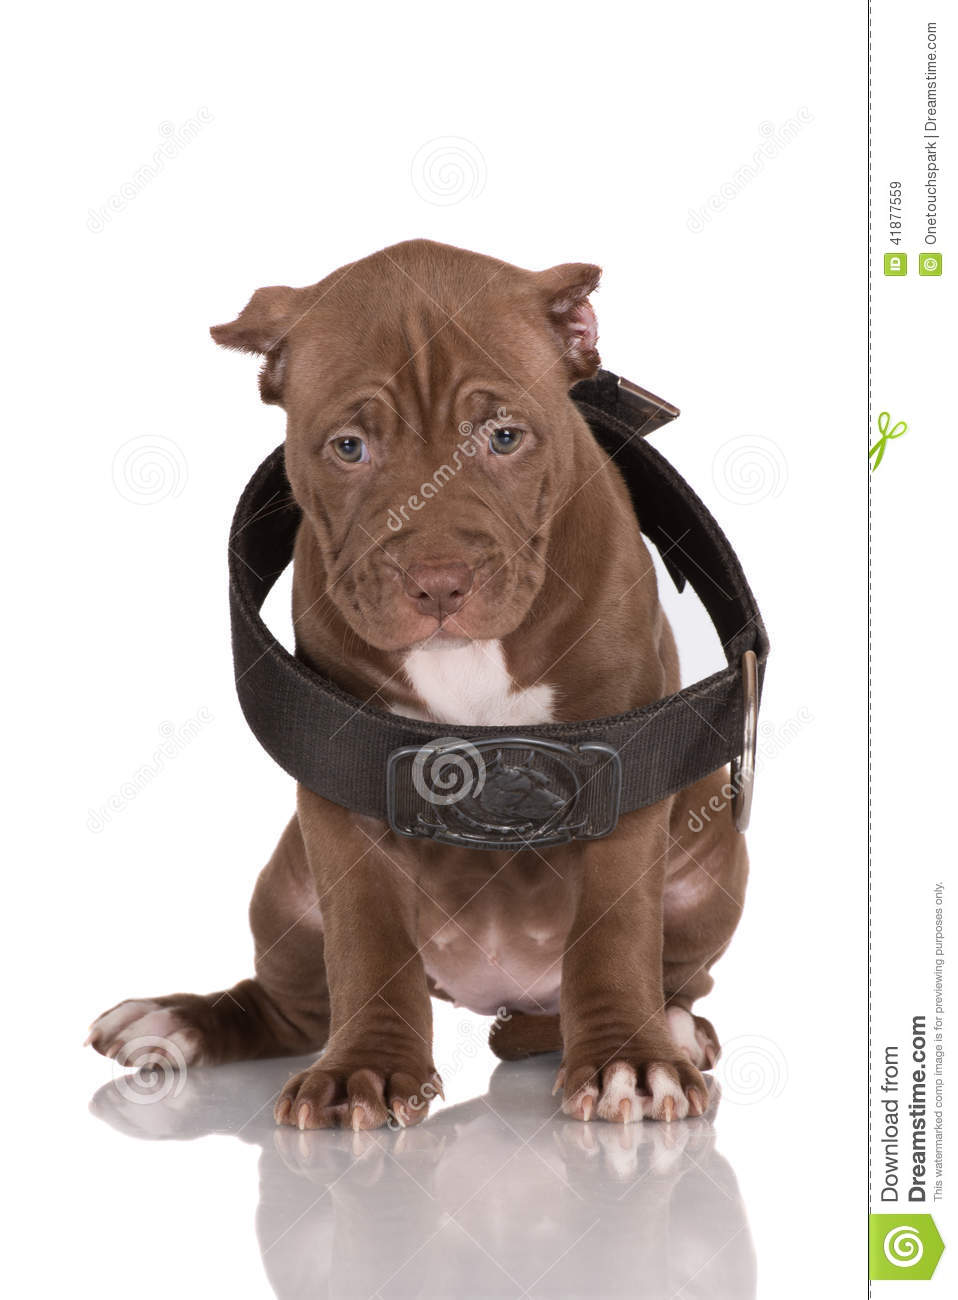 Adorable Chocolate Brown Pit Bull Puppy Stock Image ...